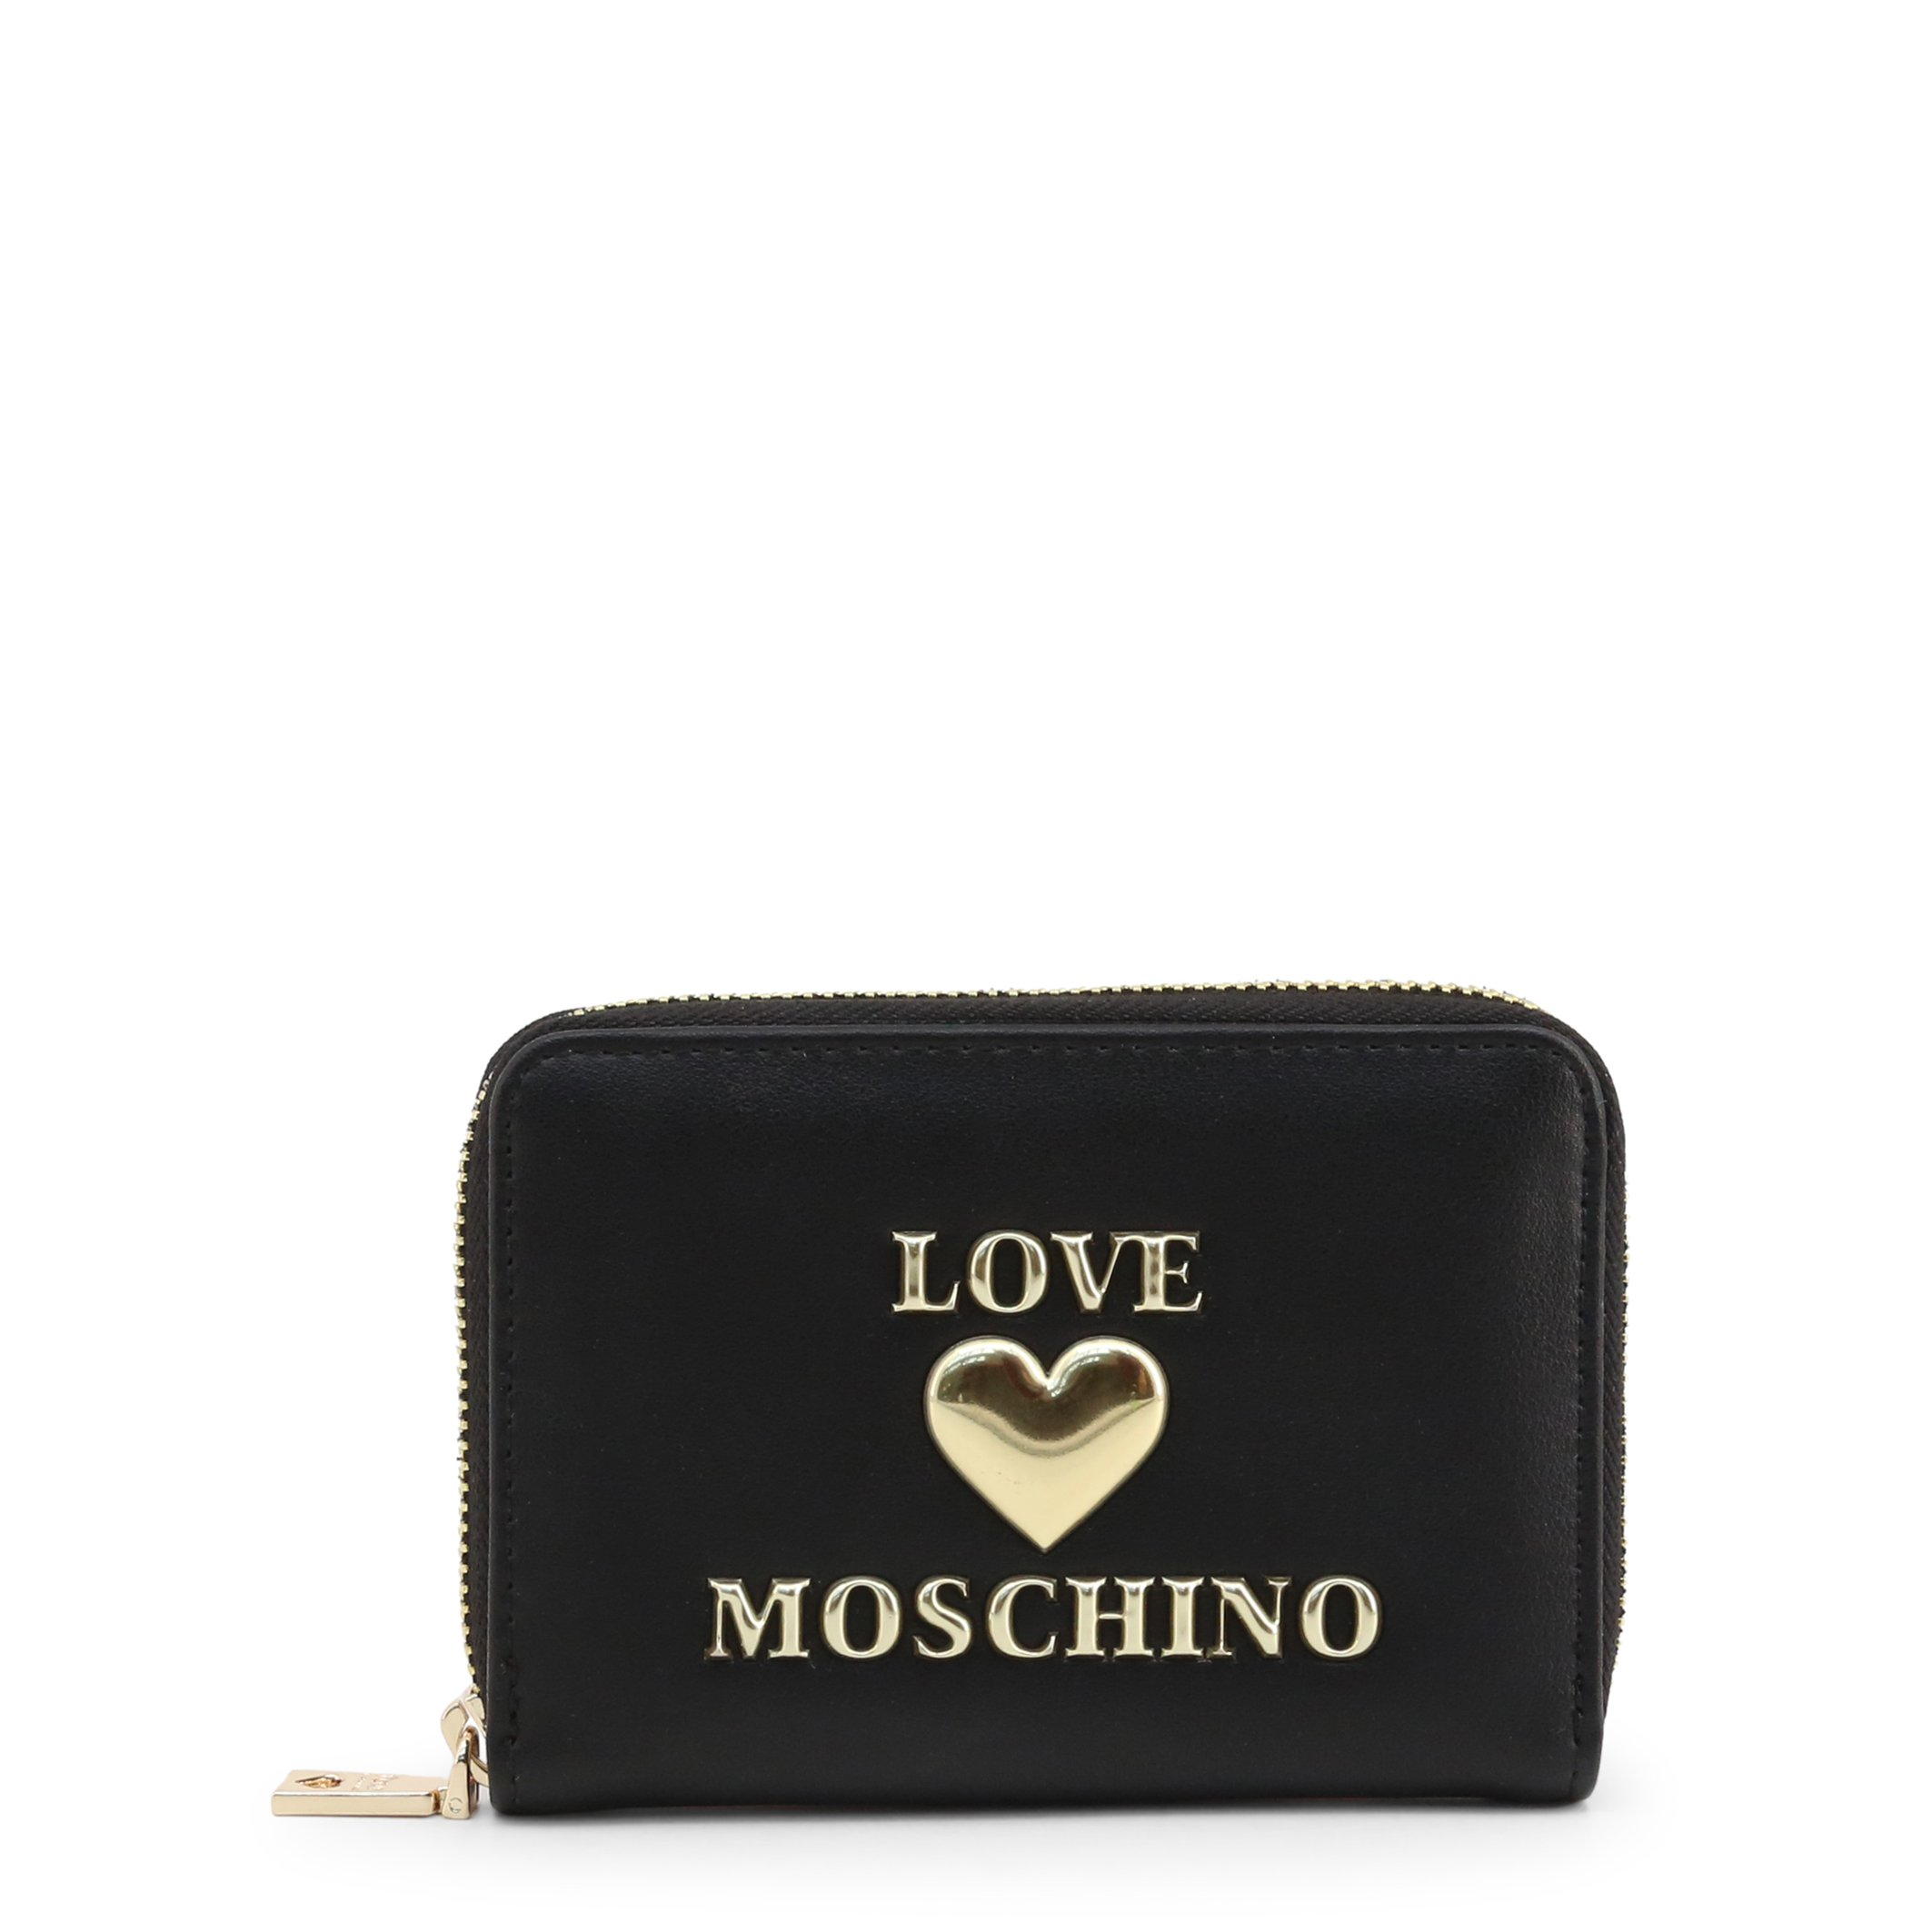 Love Moschino Women's Wallet Various Colours JC5610PP1BLE - black NOSIZE